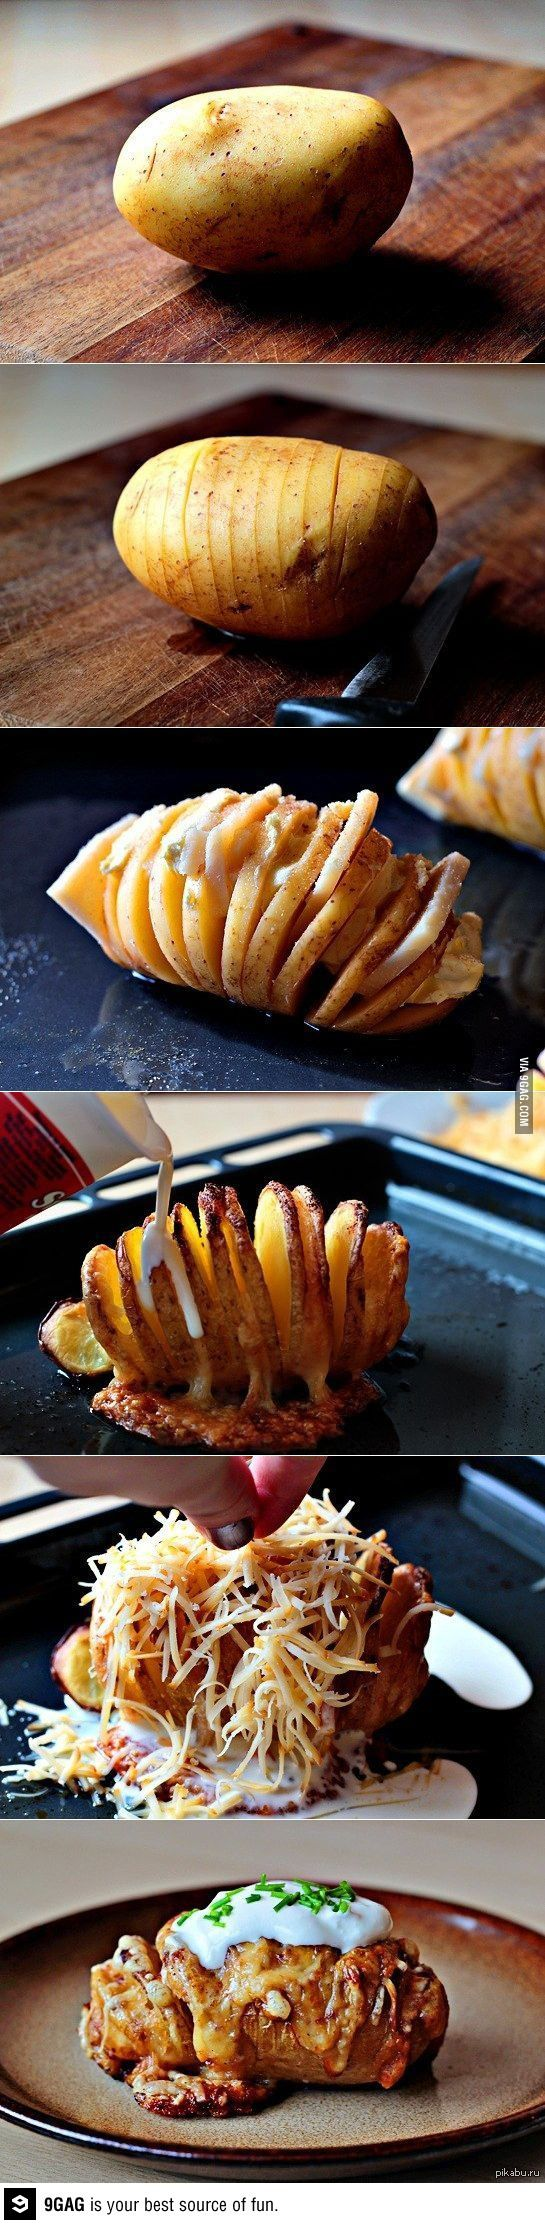 A new take on a baked potato.